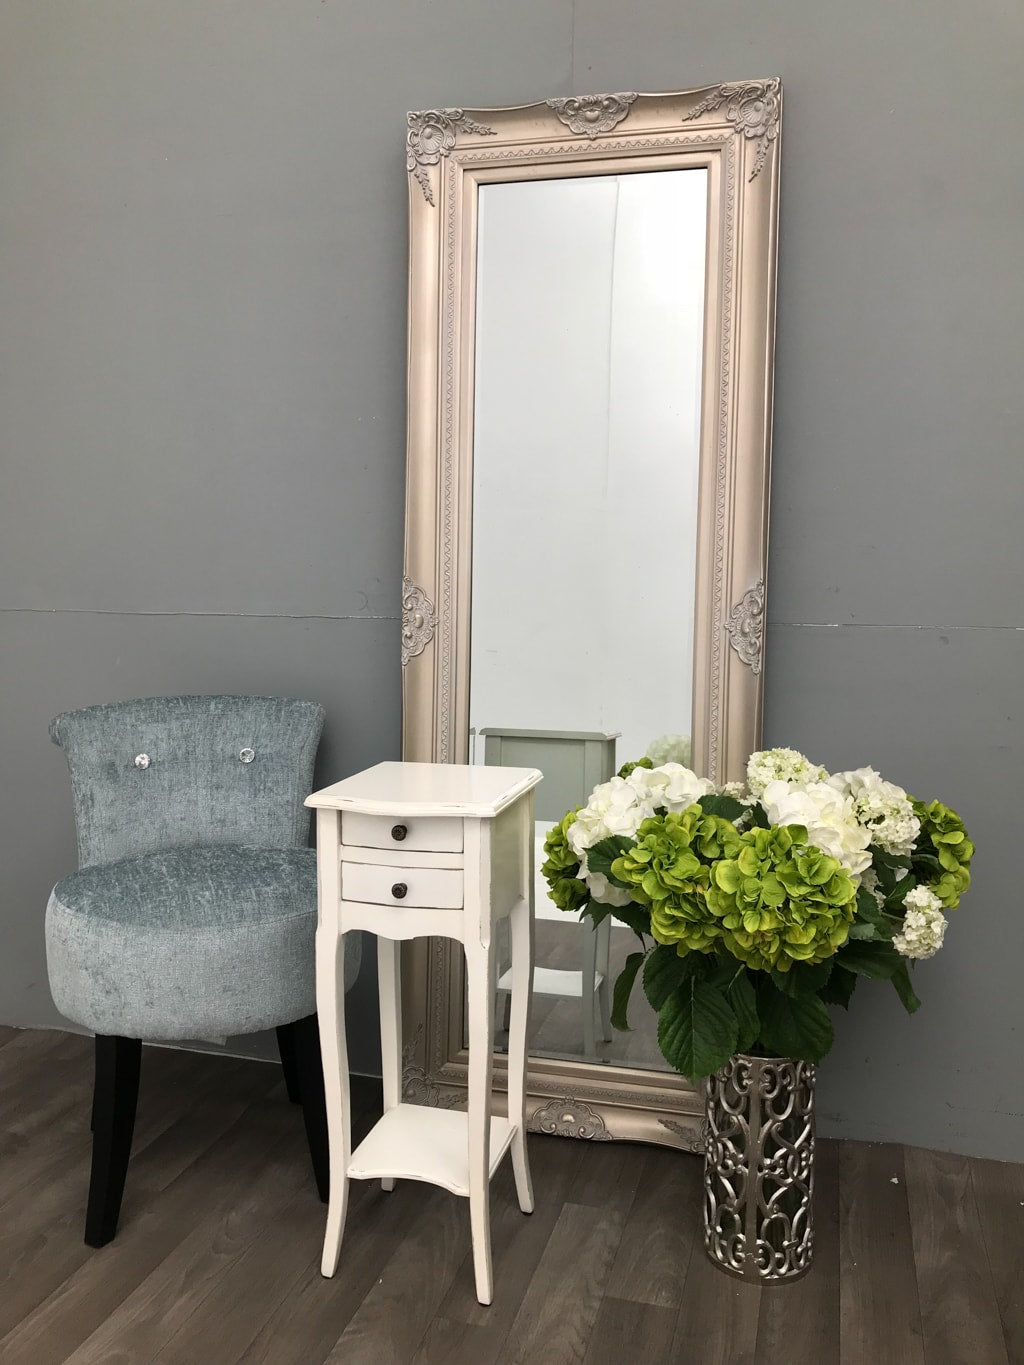 Pair of Small Rubbed White Bedside Tables with 2 Drawers